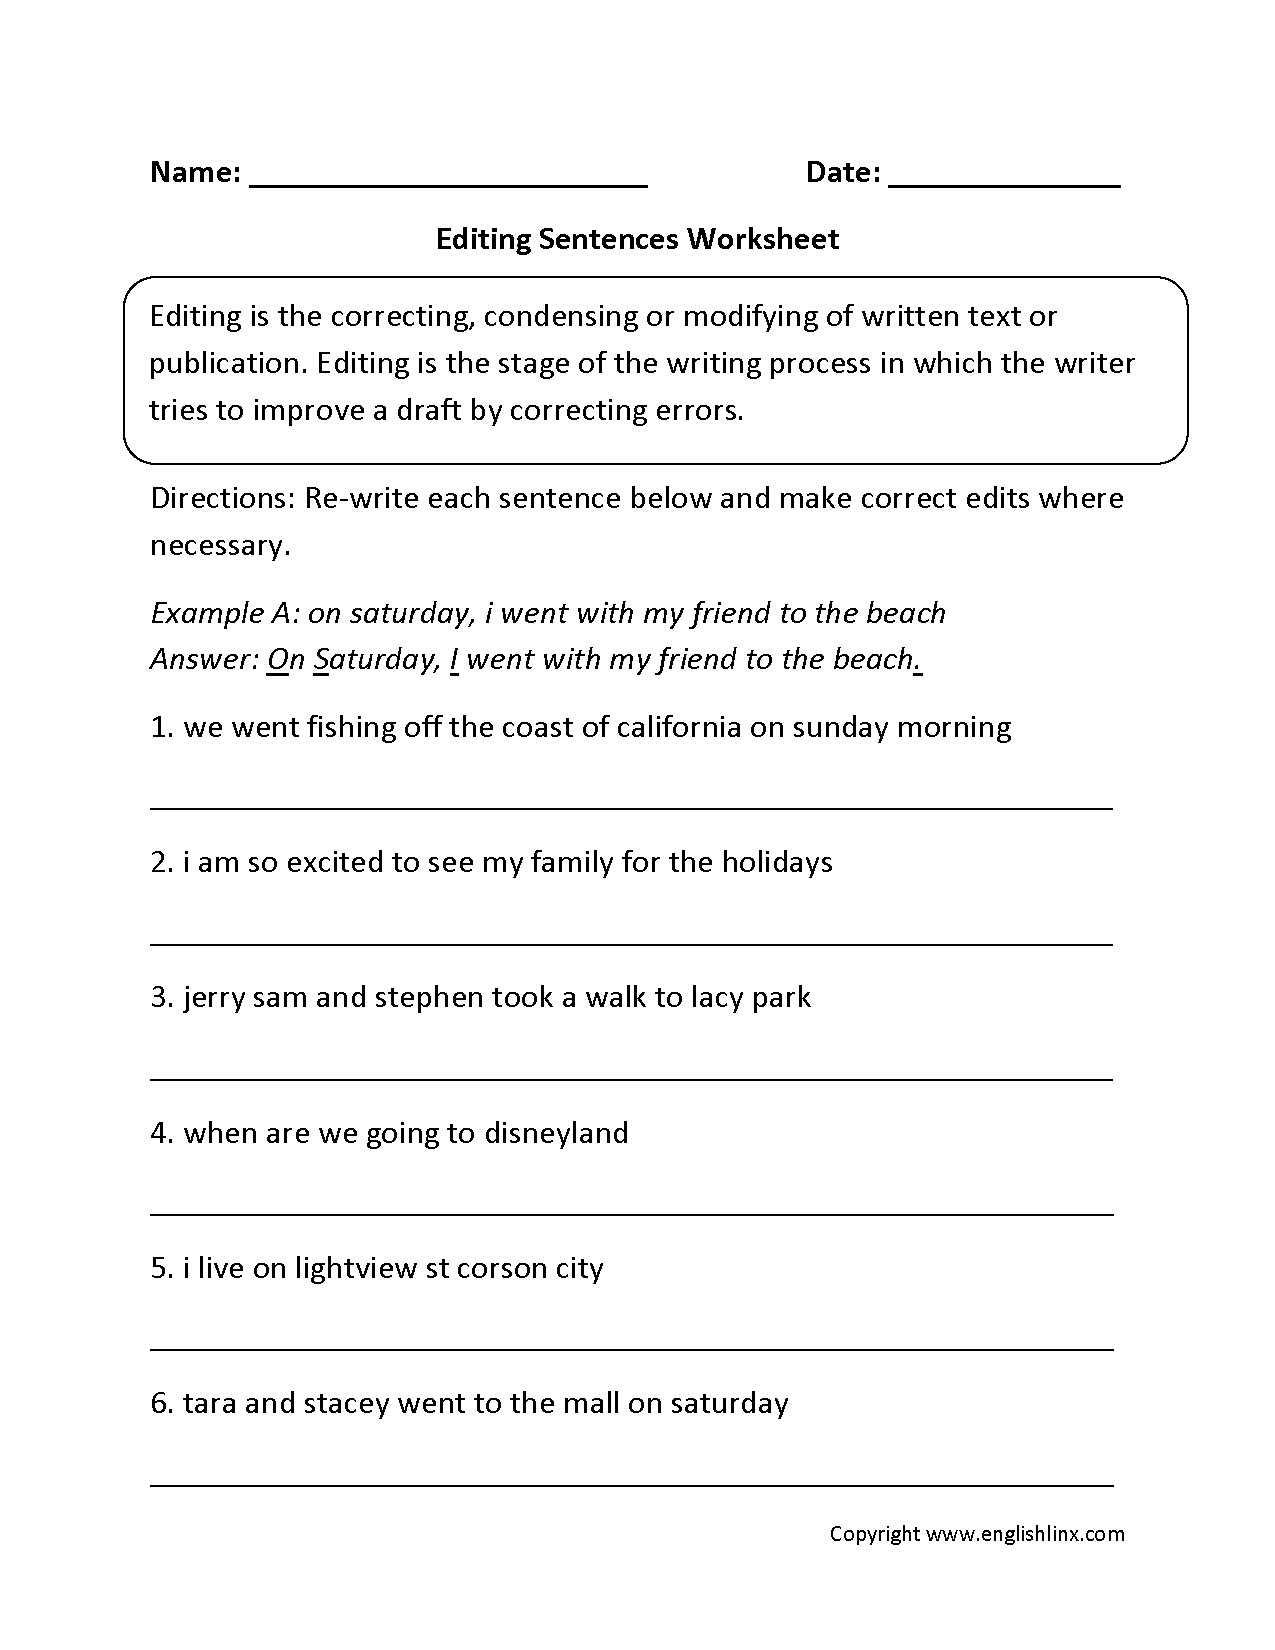 Editing Sentences 3rd Grade Editing Worksheet Sentece